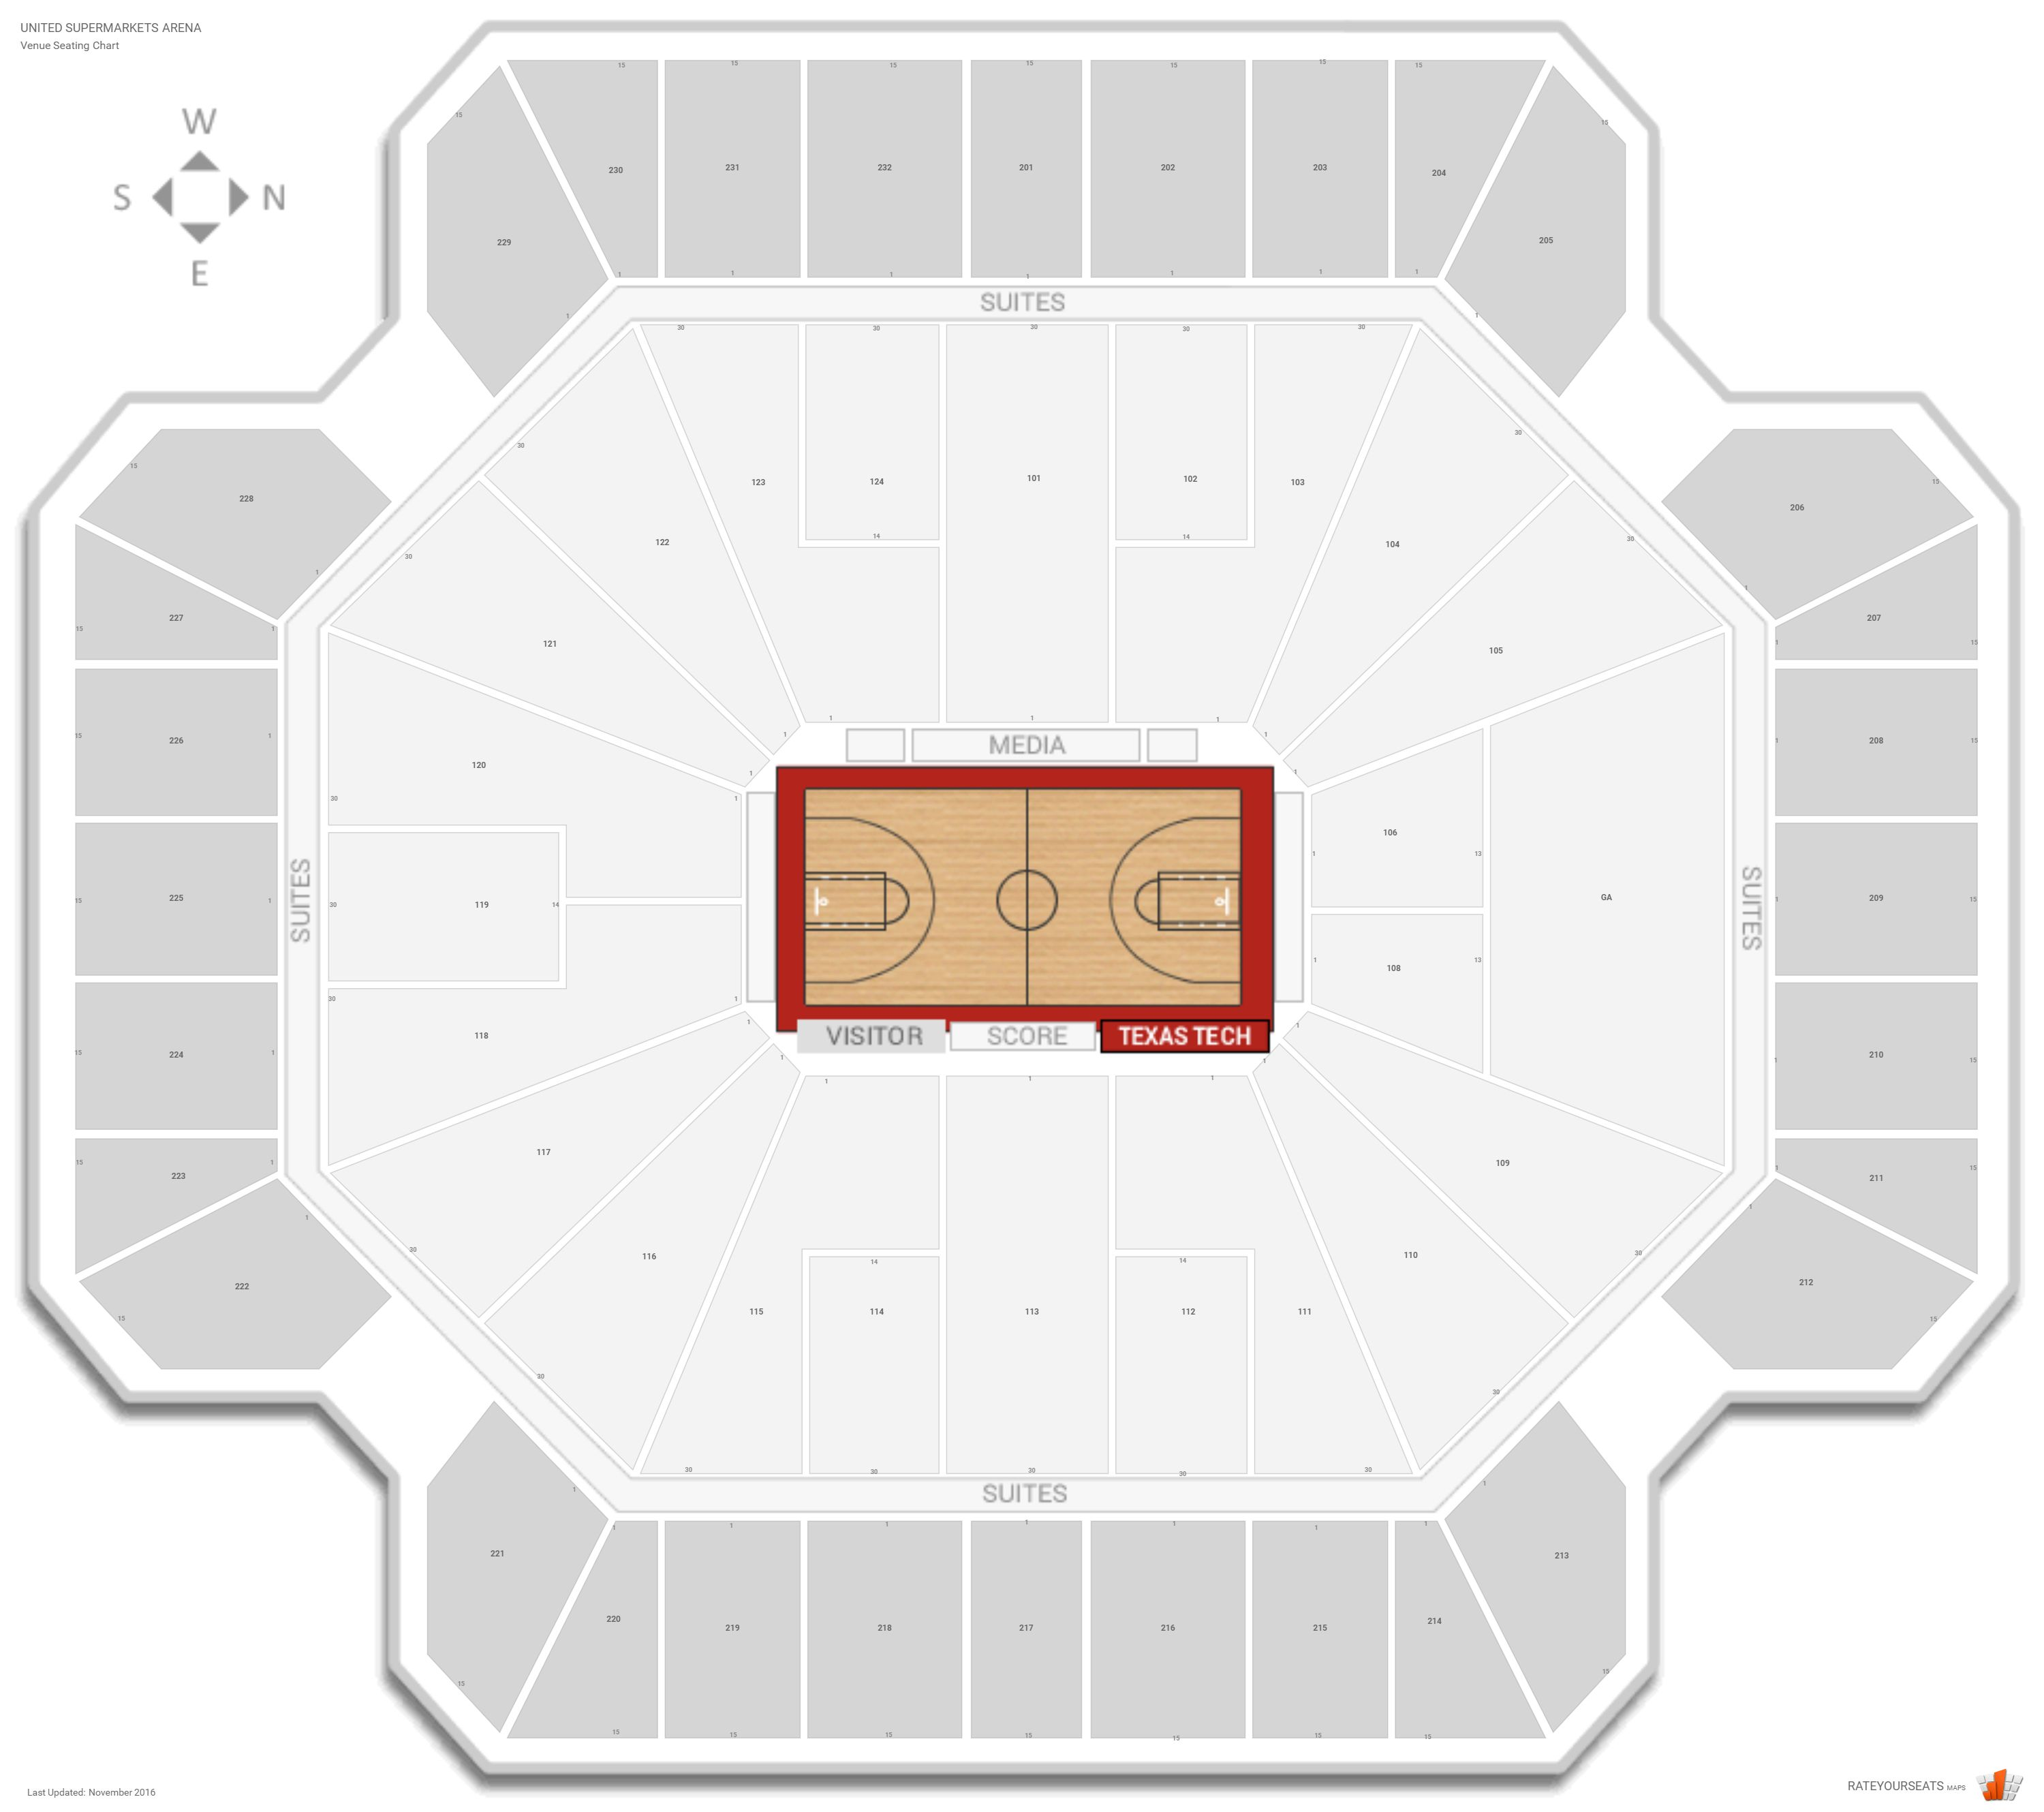 United Supermarkets Arena Seating Chart With Row Numbers